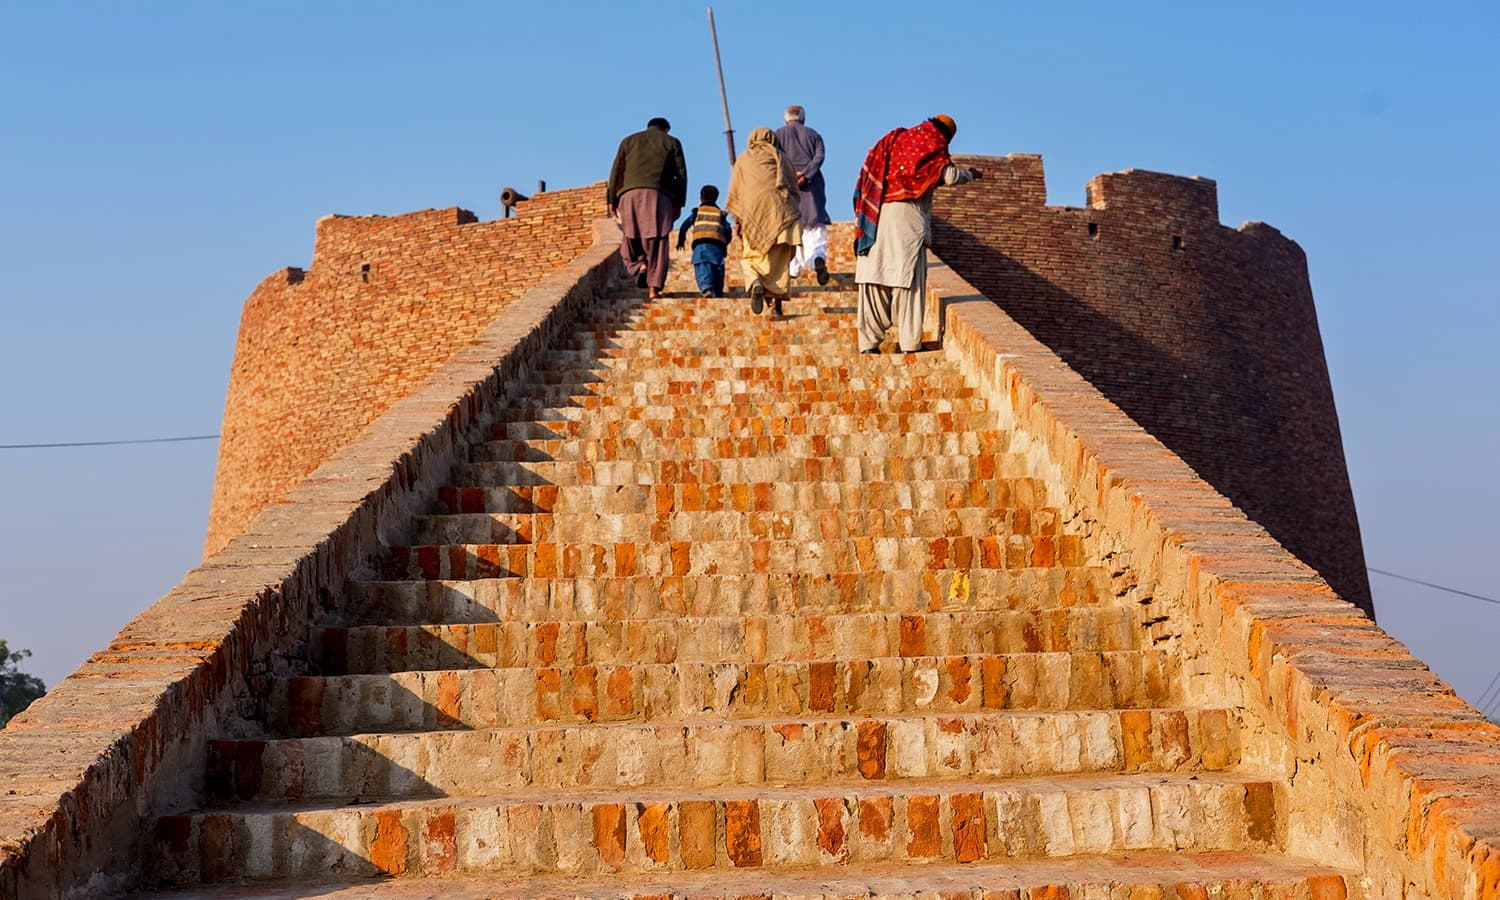 Robust stairs leading to the top of the fort.